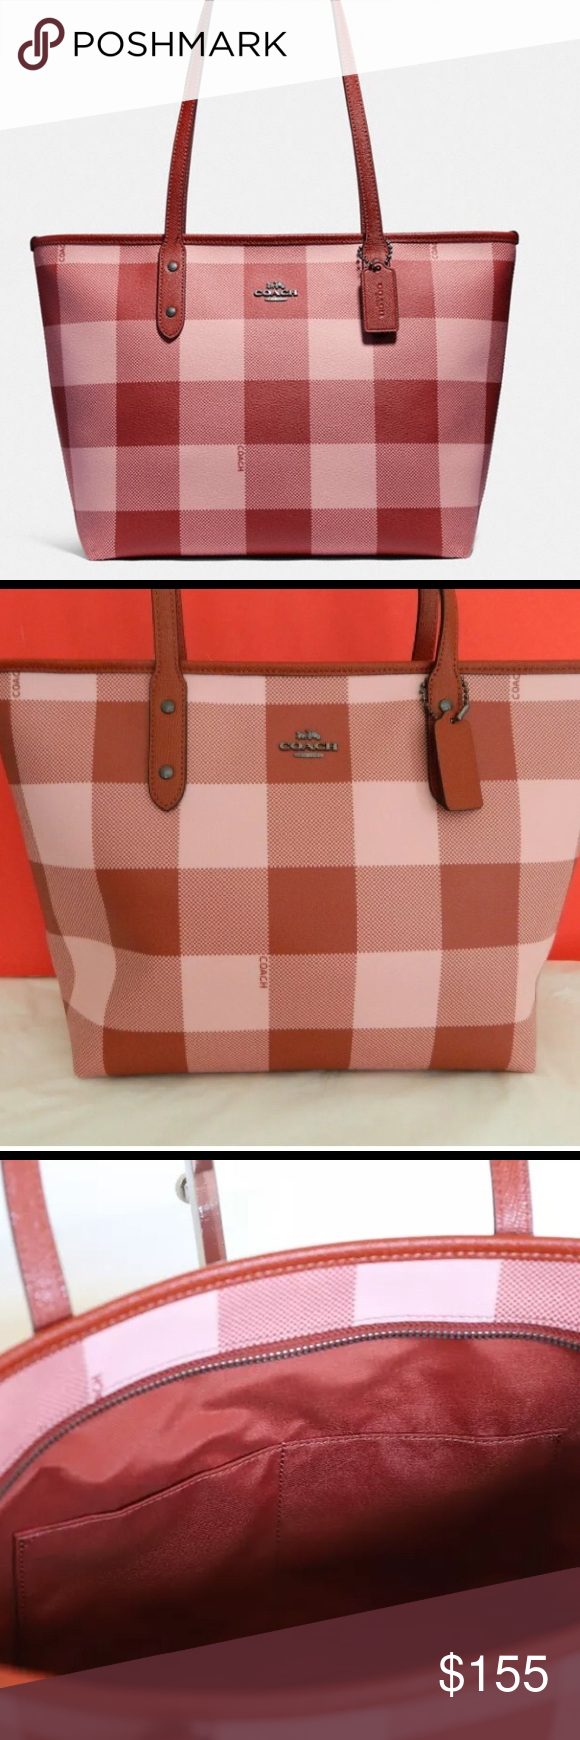 066934b7c3 NWT Coach F26147 City Zip Tote Buffalo Plaid Set NWT Coach F26147 ...